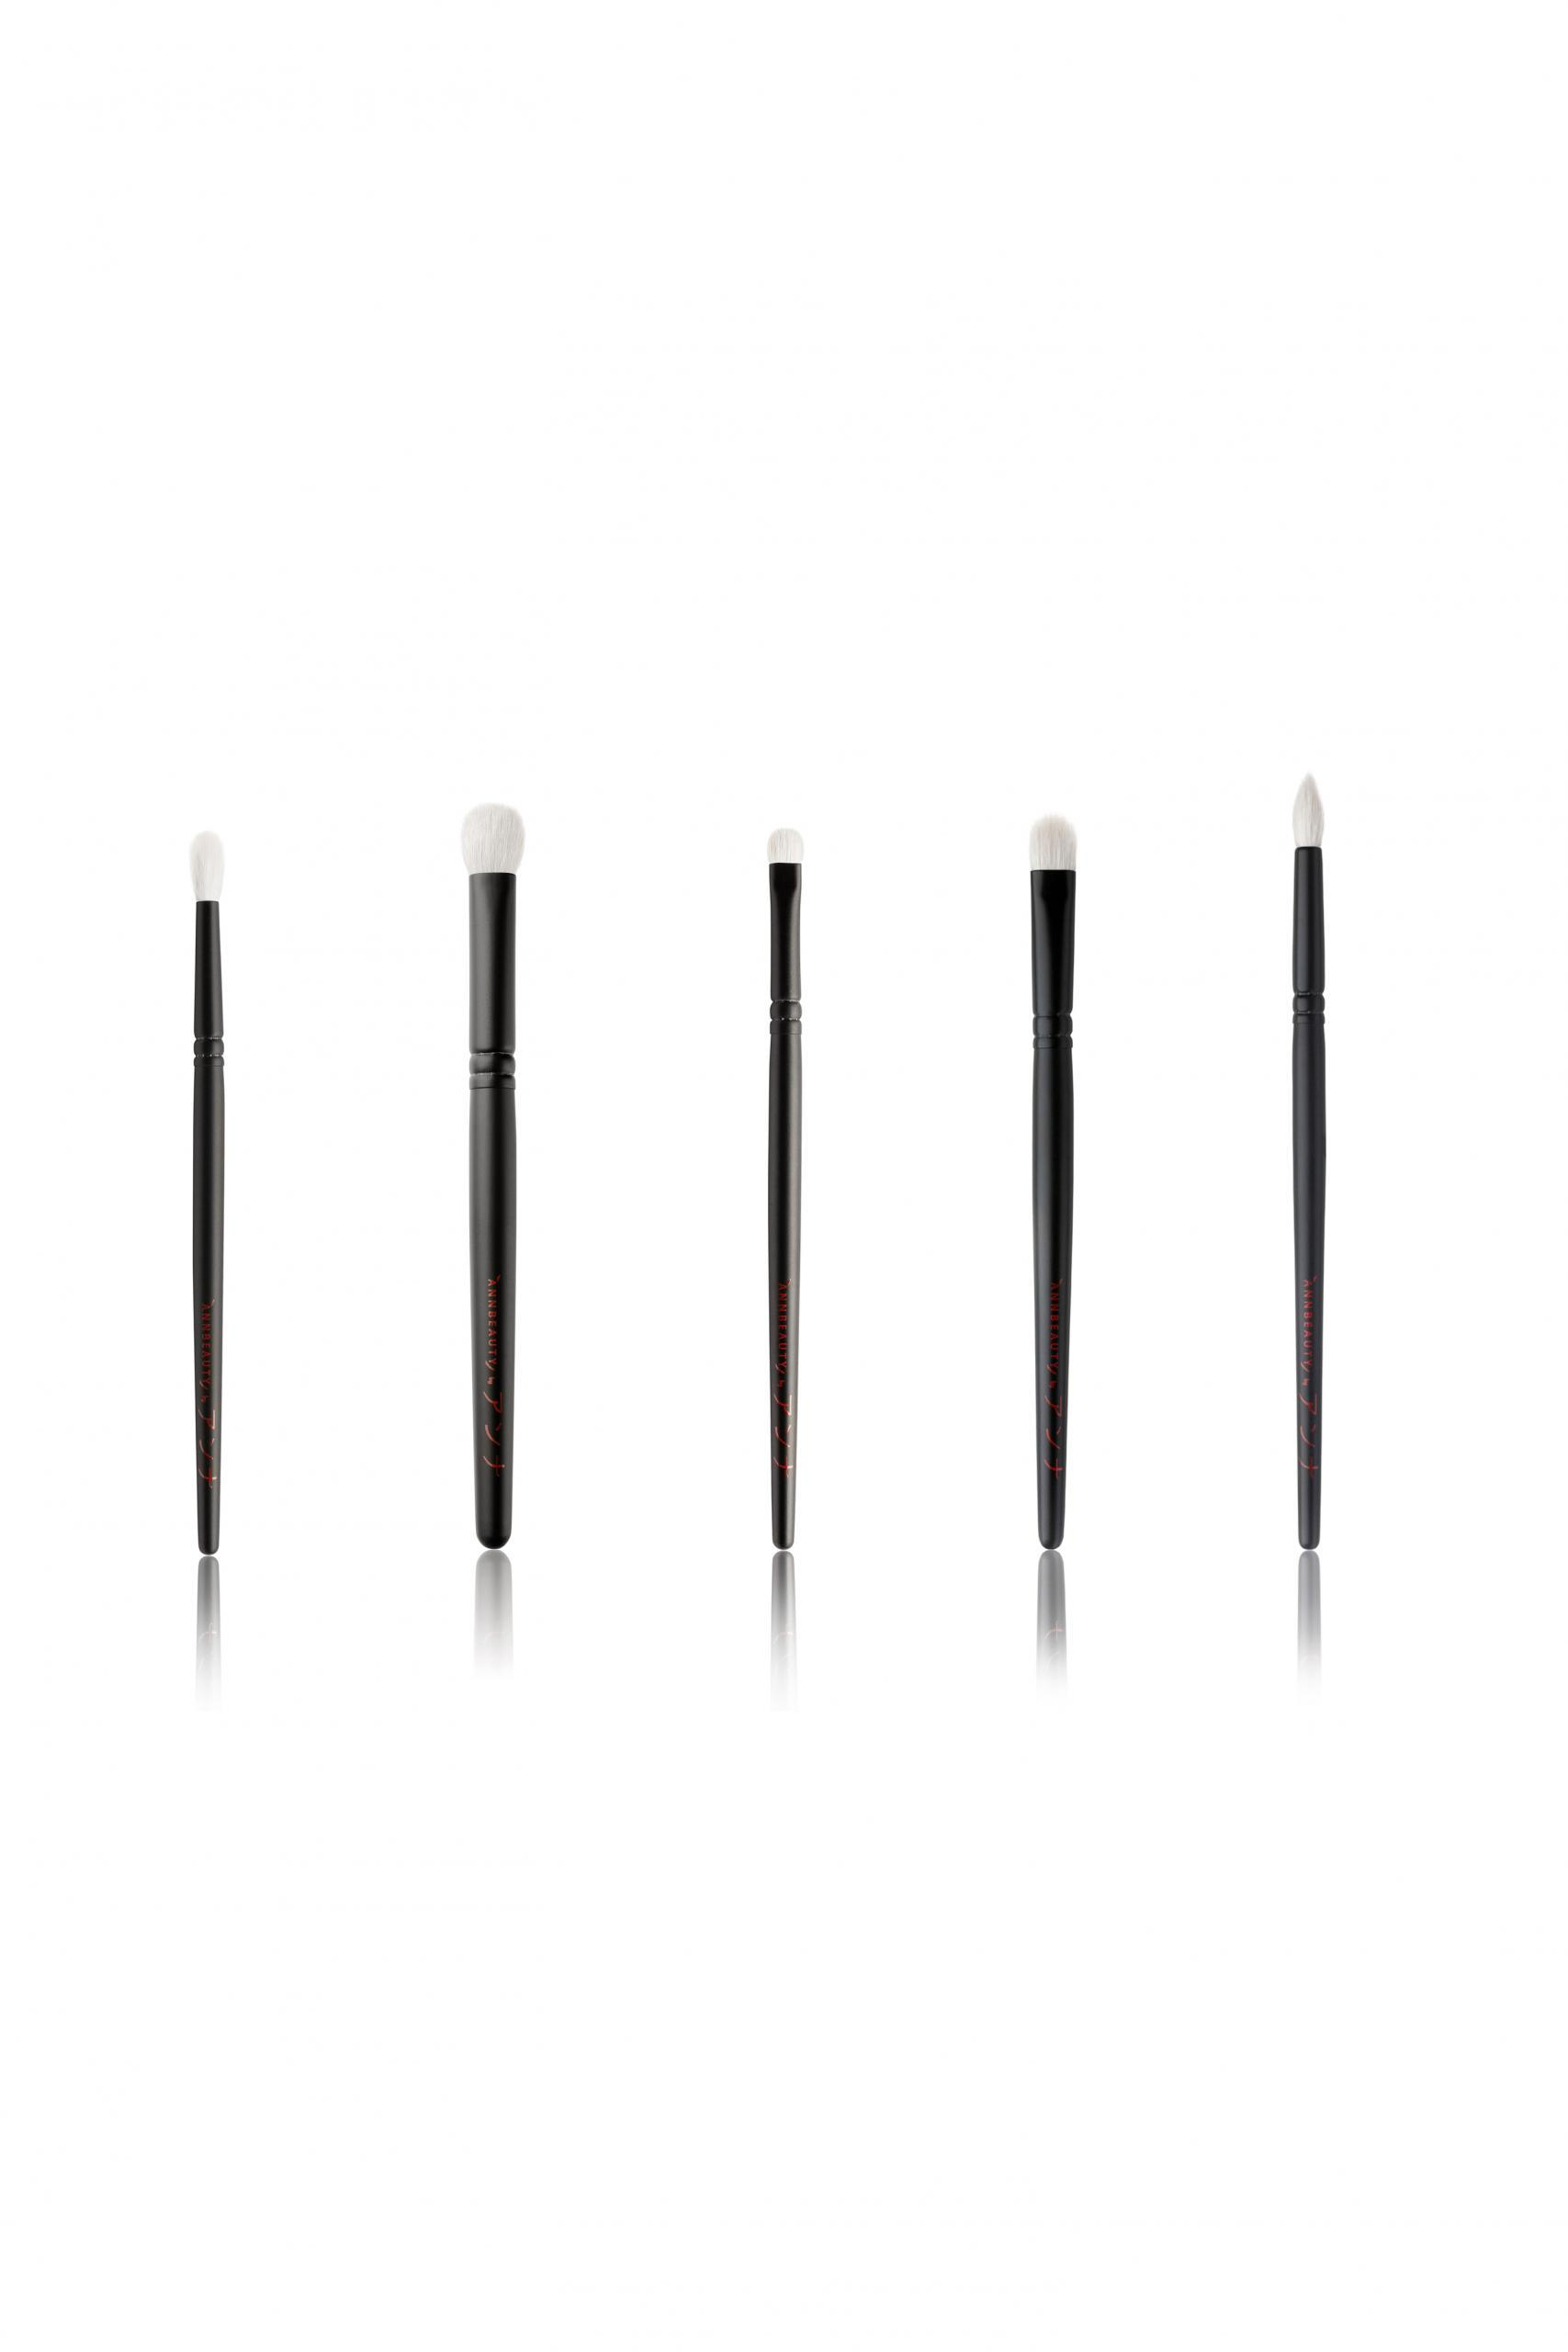 Annbeauty Katakana Eye Makeup Brush Set